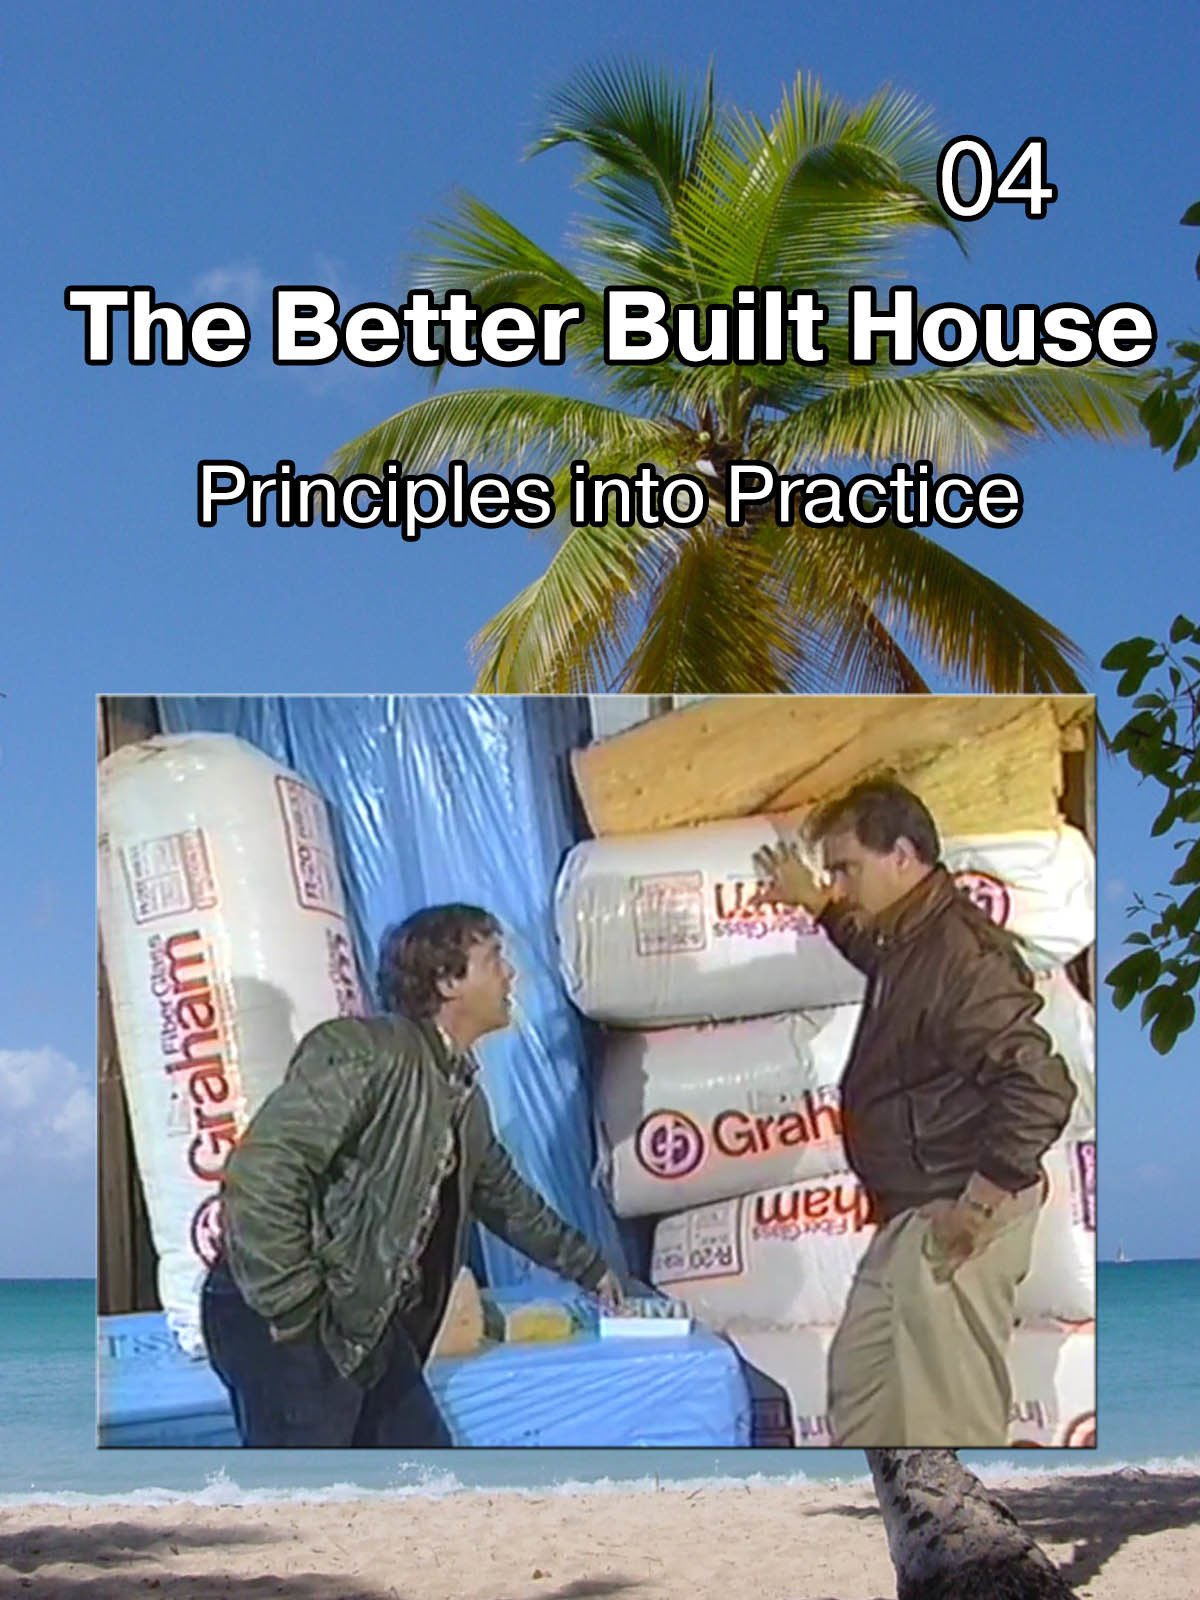 The Better Built House 04 Principles into Practice on Amazon Prime Instant Video UK